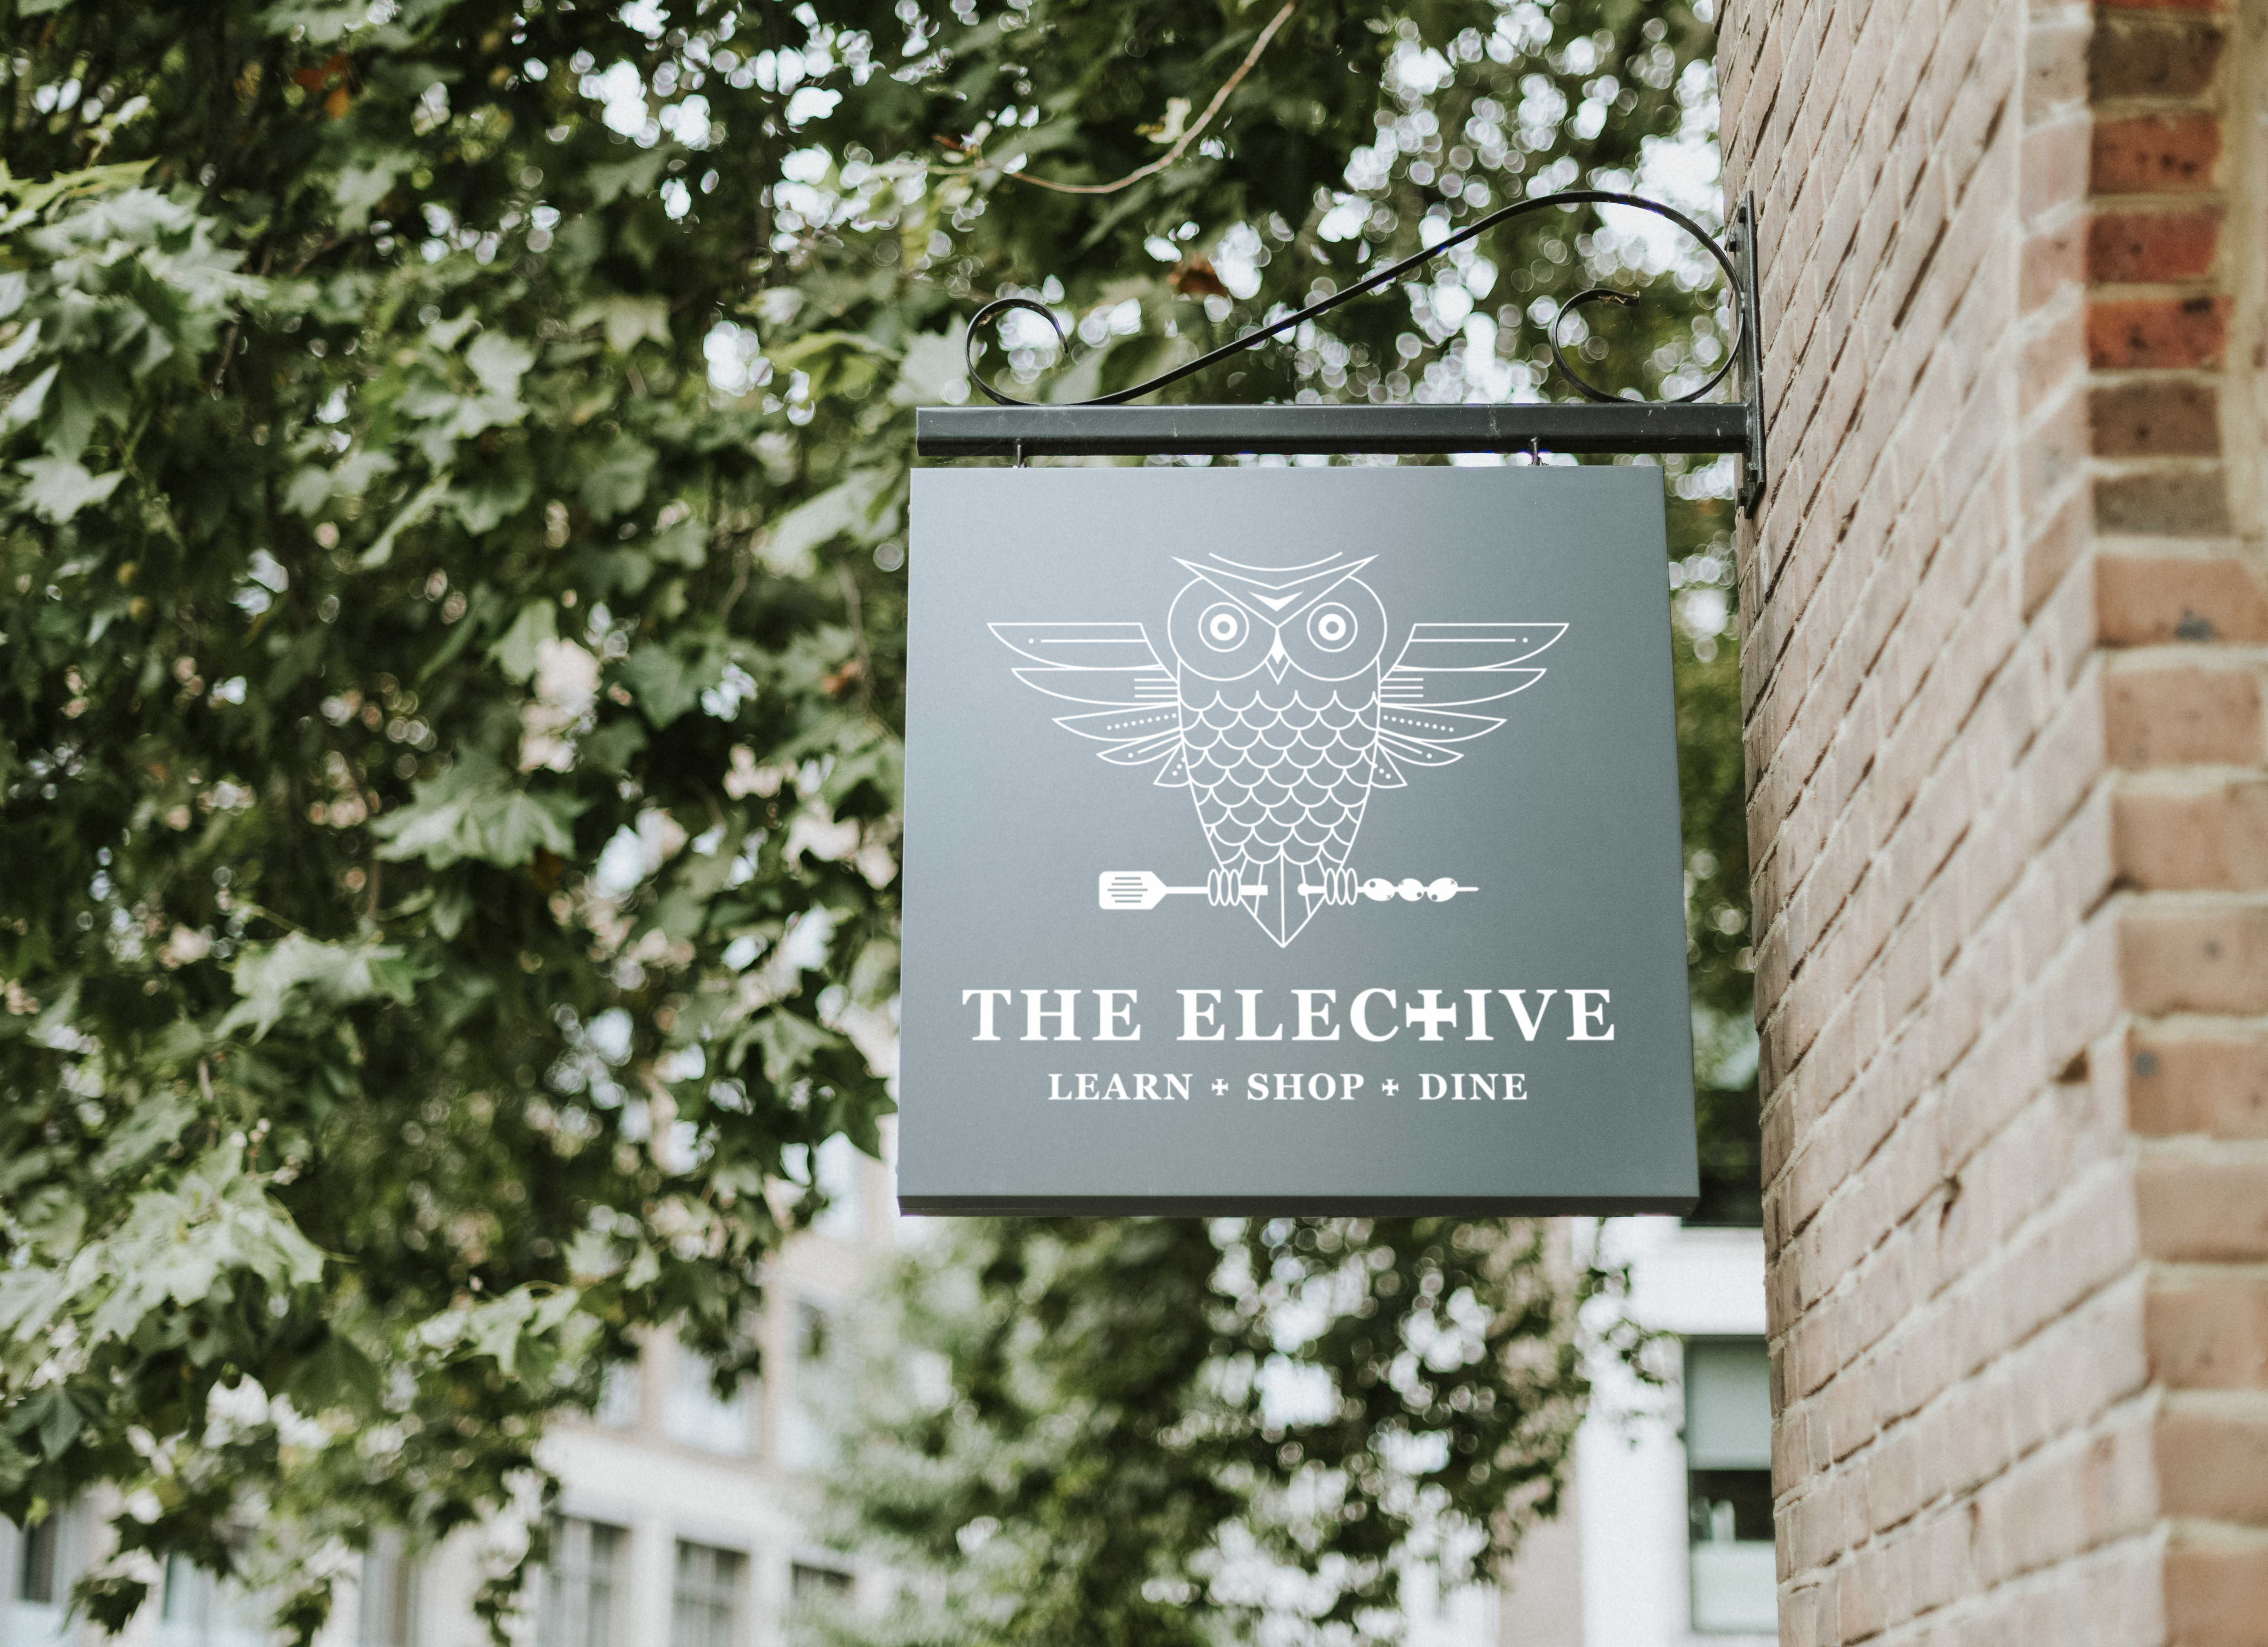 The Elective